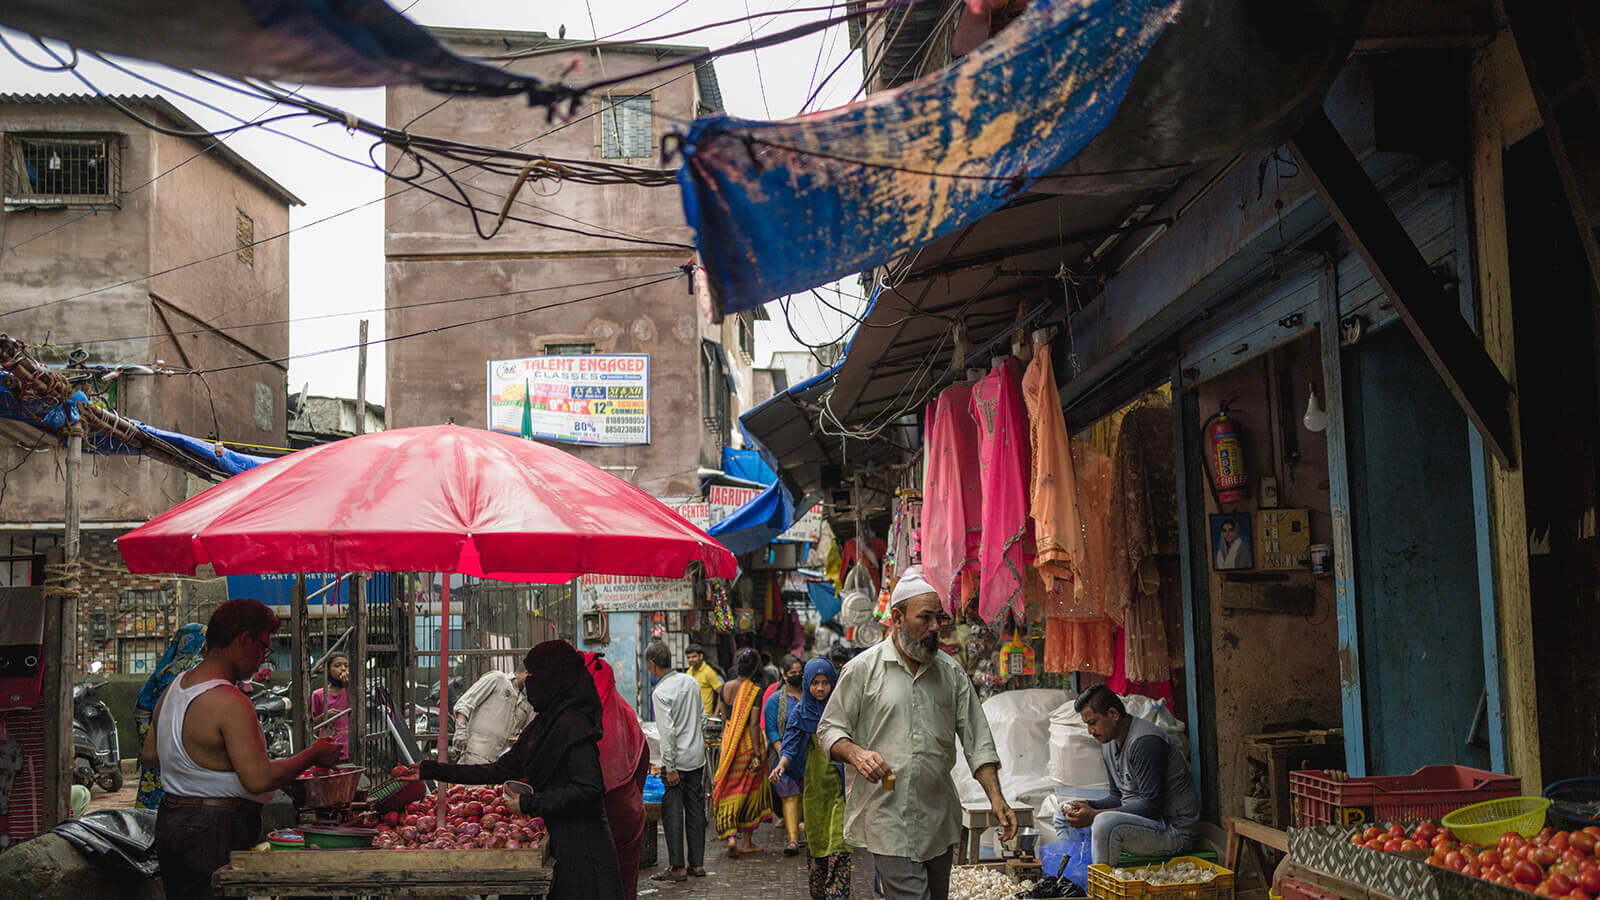 The bustling market street- a regular day in the gully.